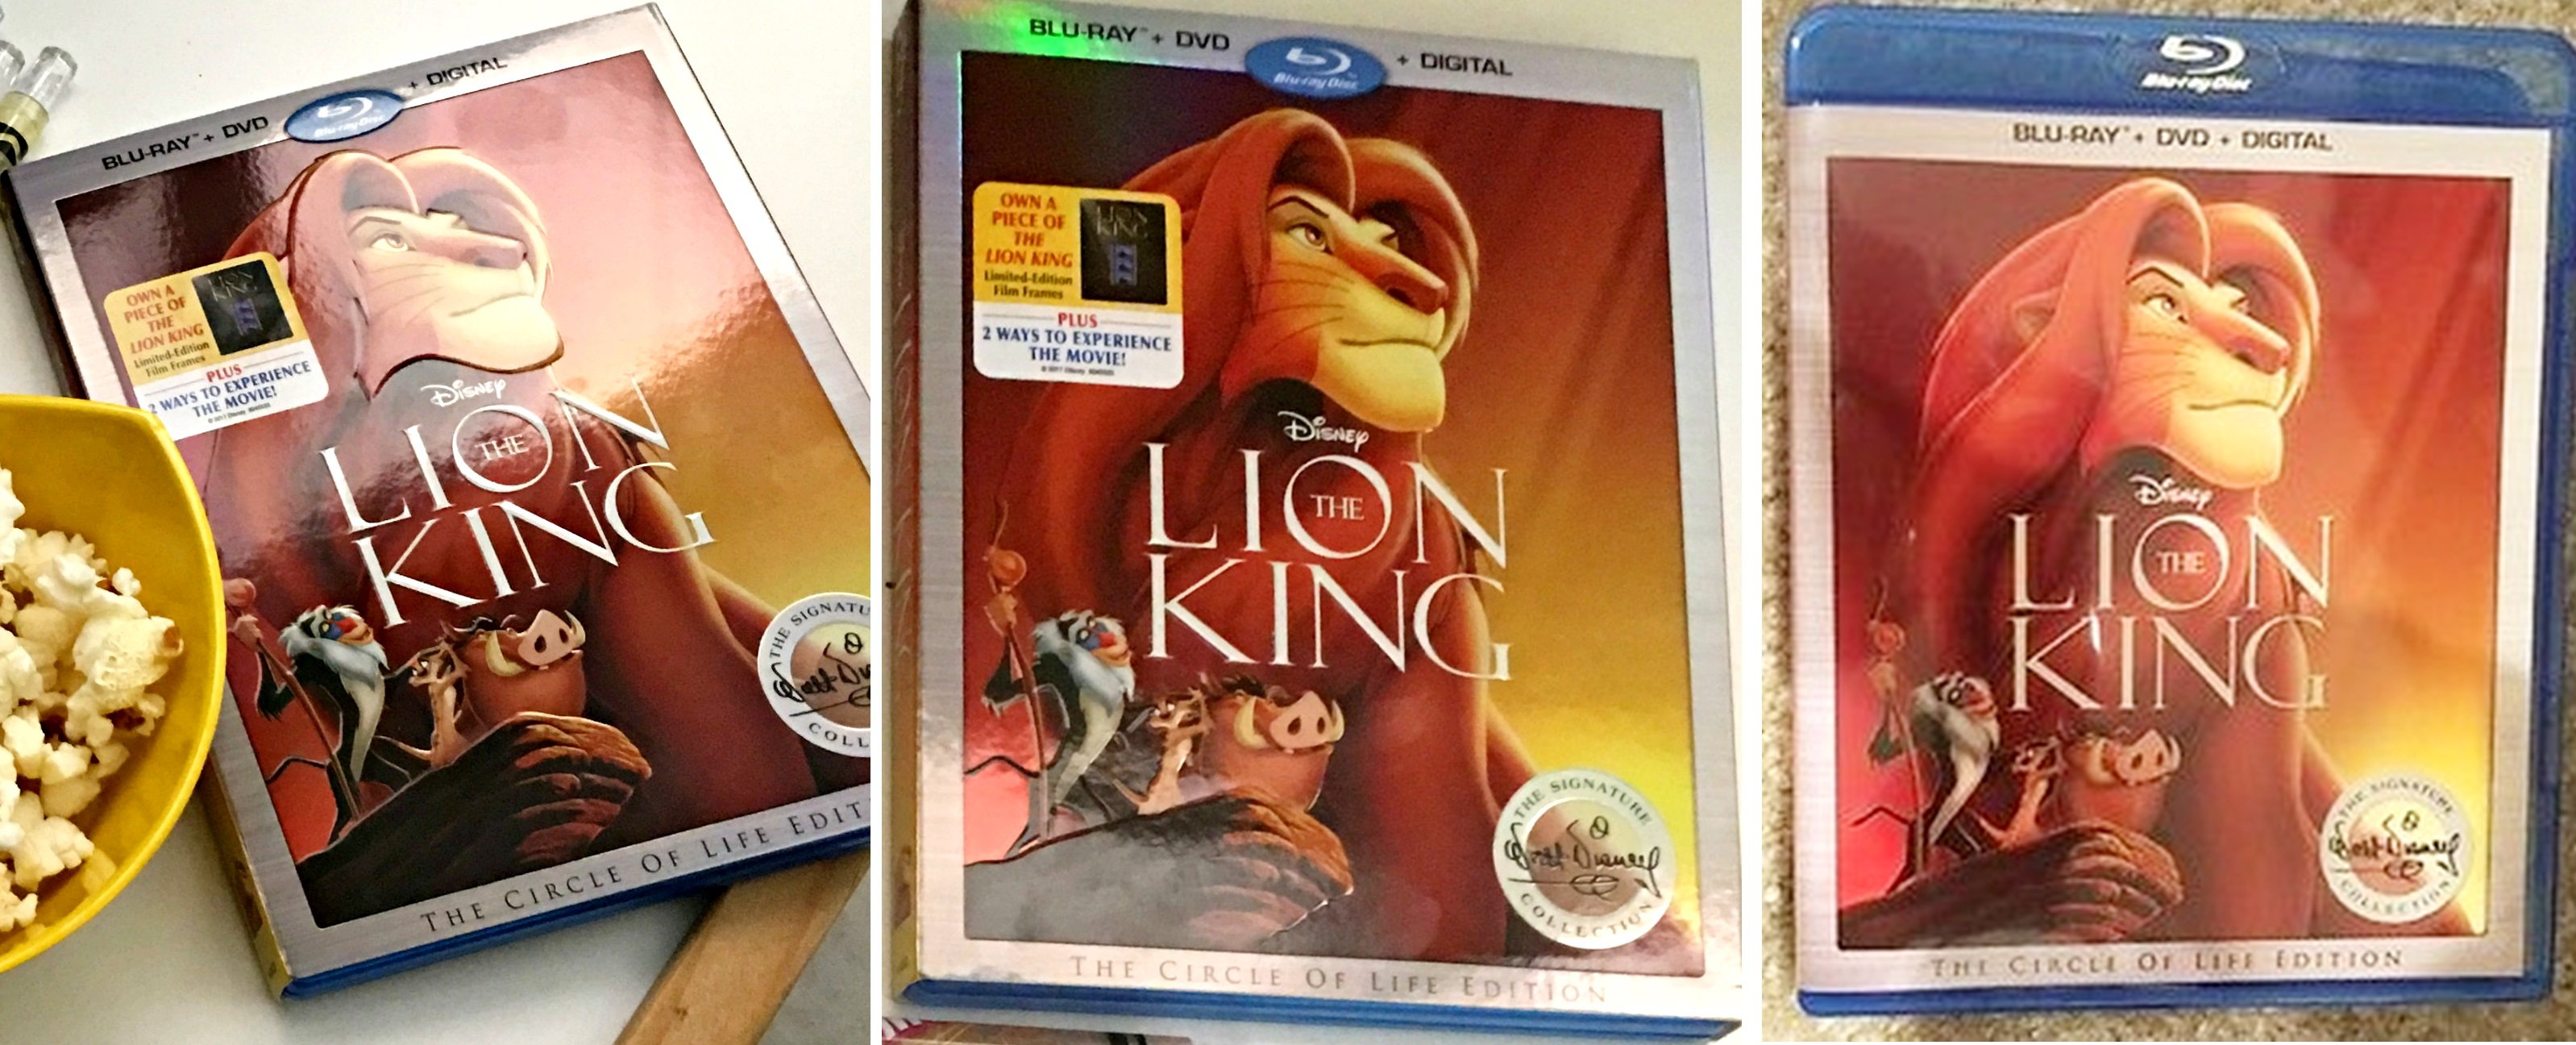 the-lion-king-bluray-signature-package